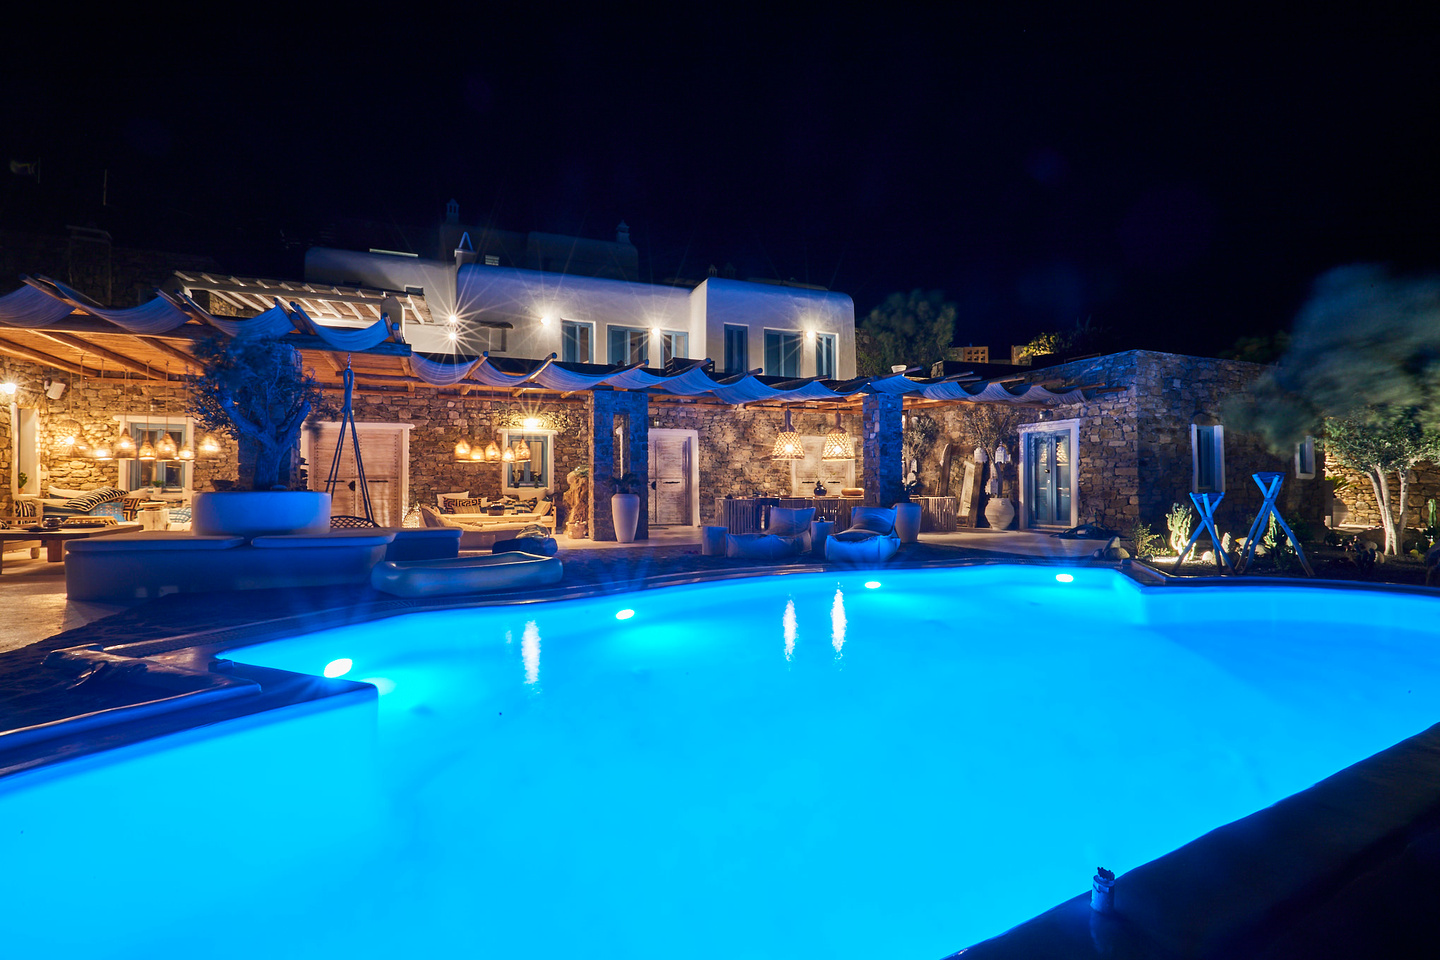 RENT A LUXURIOUS VILLA BY THE SEA IN MYKONOS - VILLA KARKOS - swimming pool at night